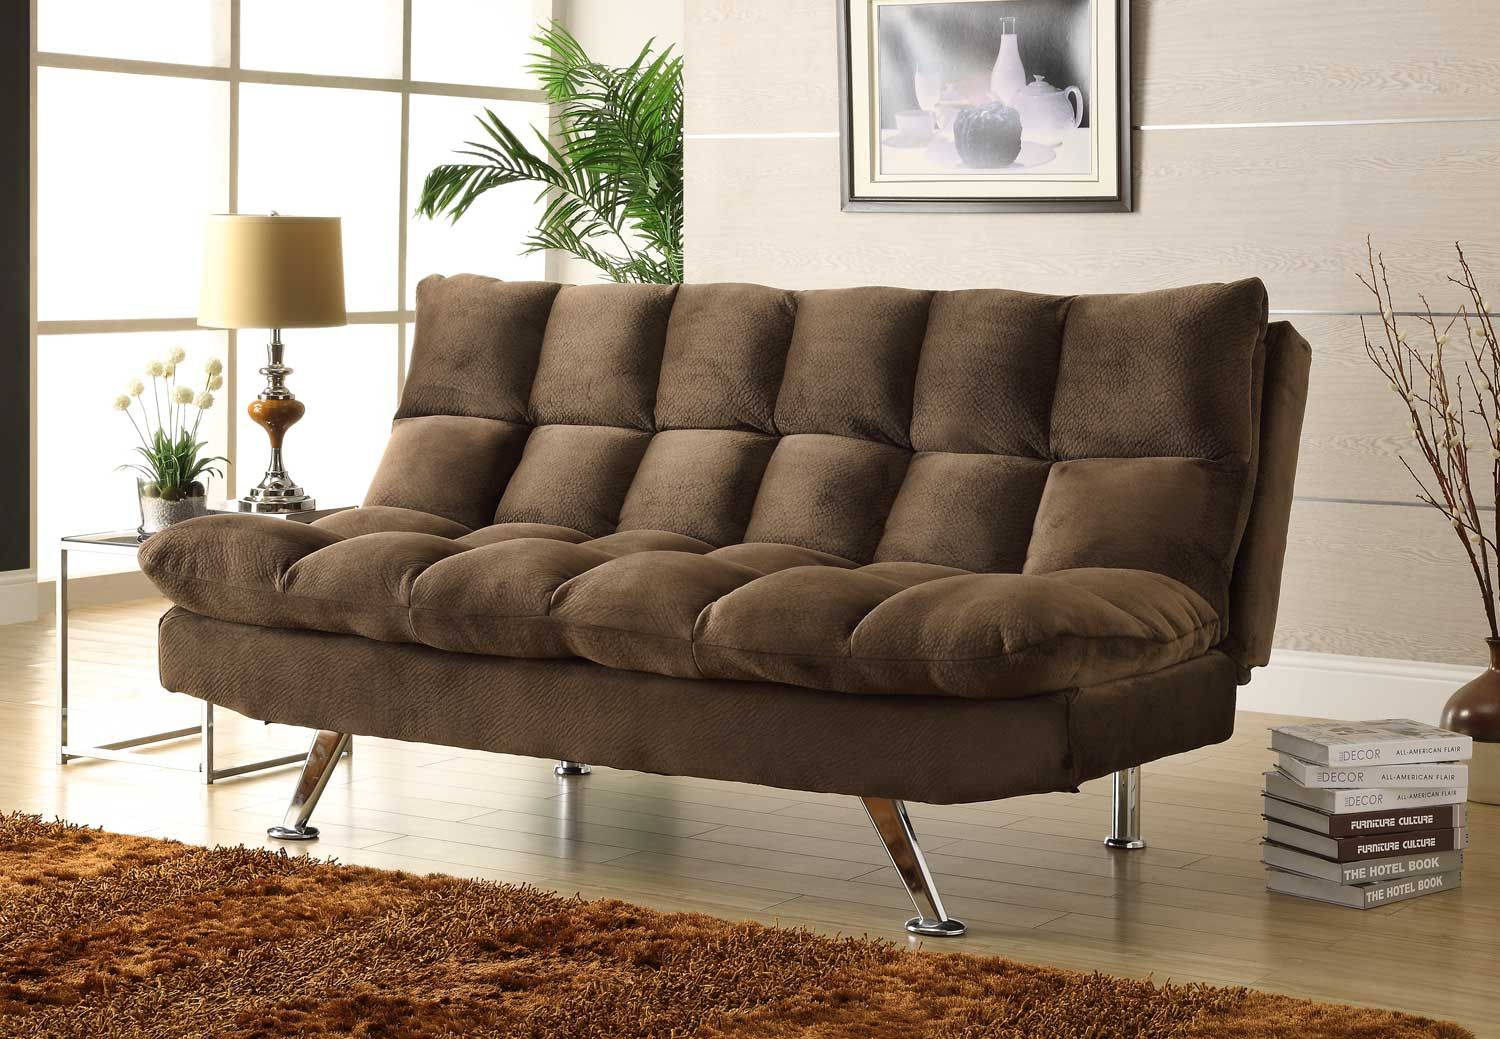 Furniture Living Room Seating Sleeper Sofas Microfiber